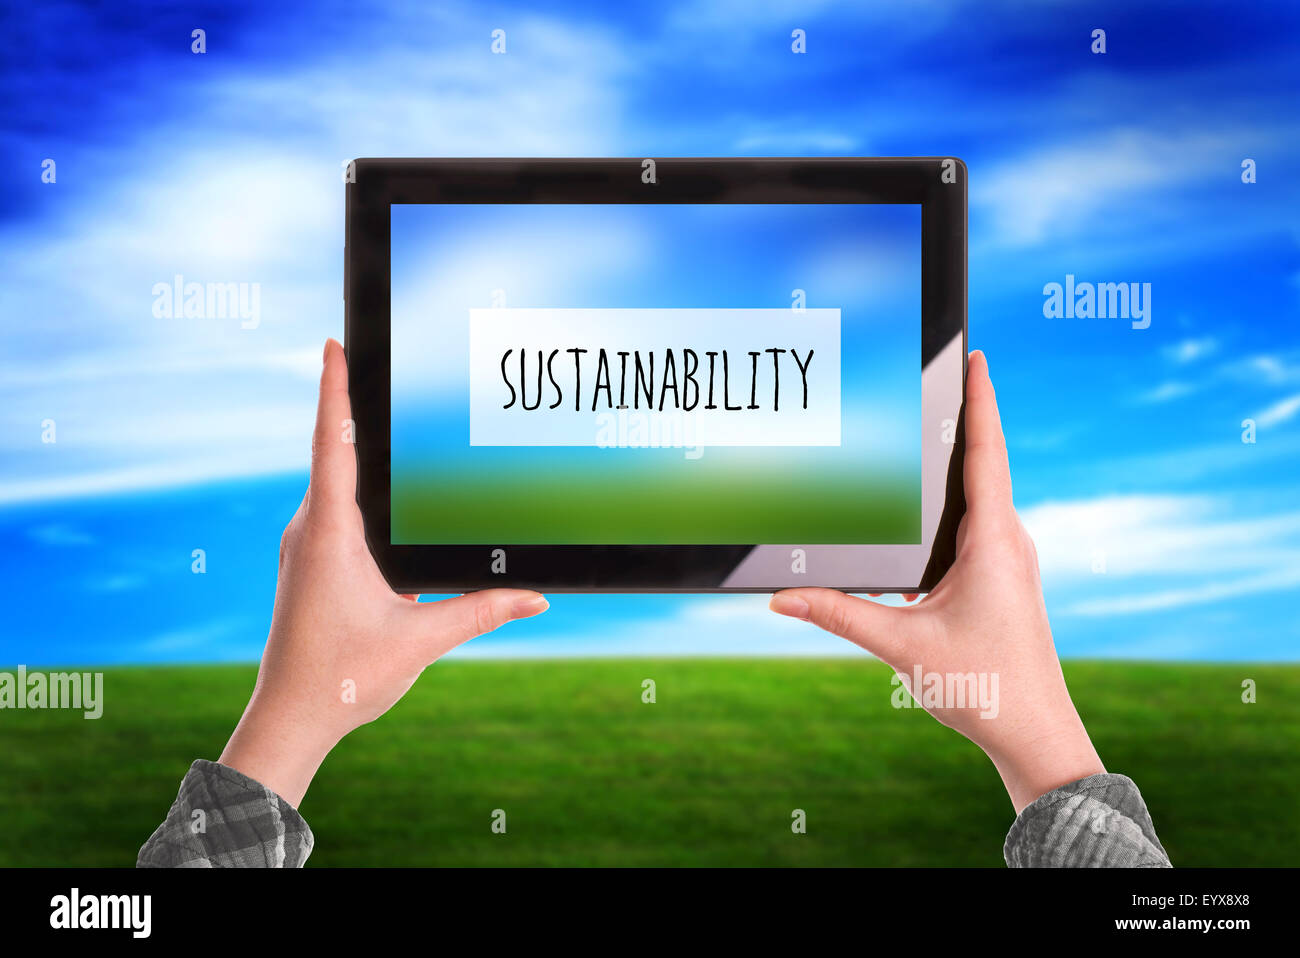 Sustainability Concept, Woman with Digital Tablet Computer Taking Picture of Natural Grassland Landscape - Stock Image